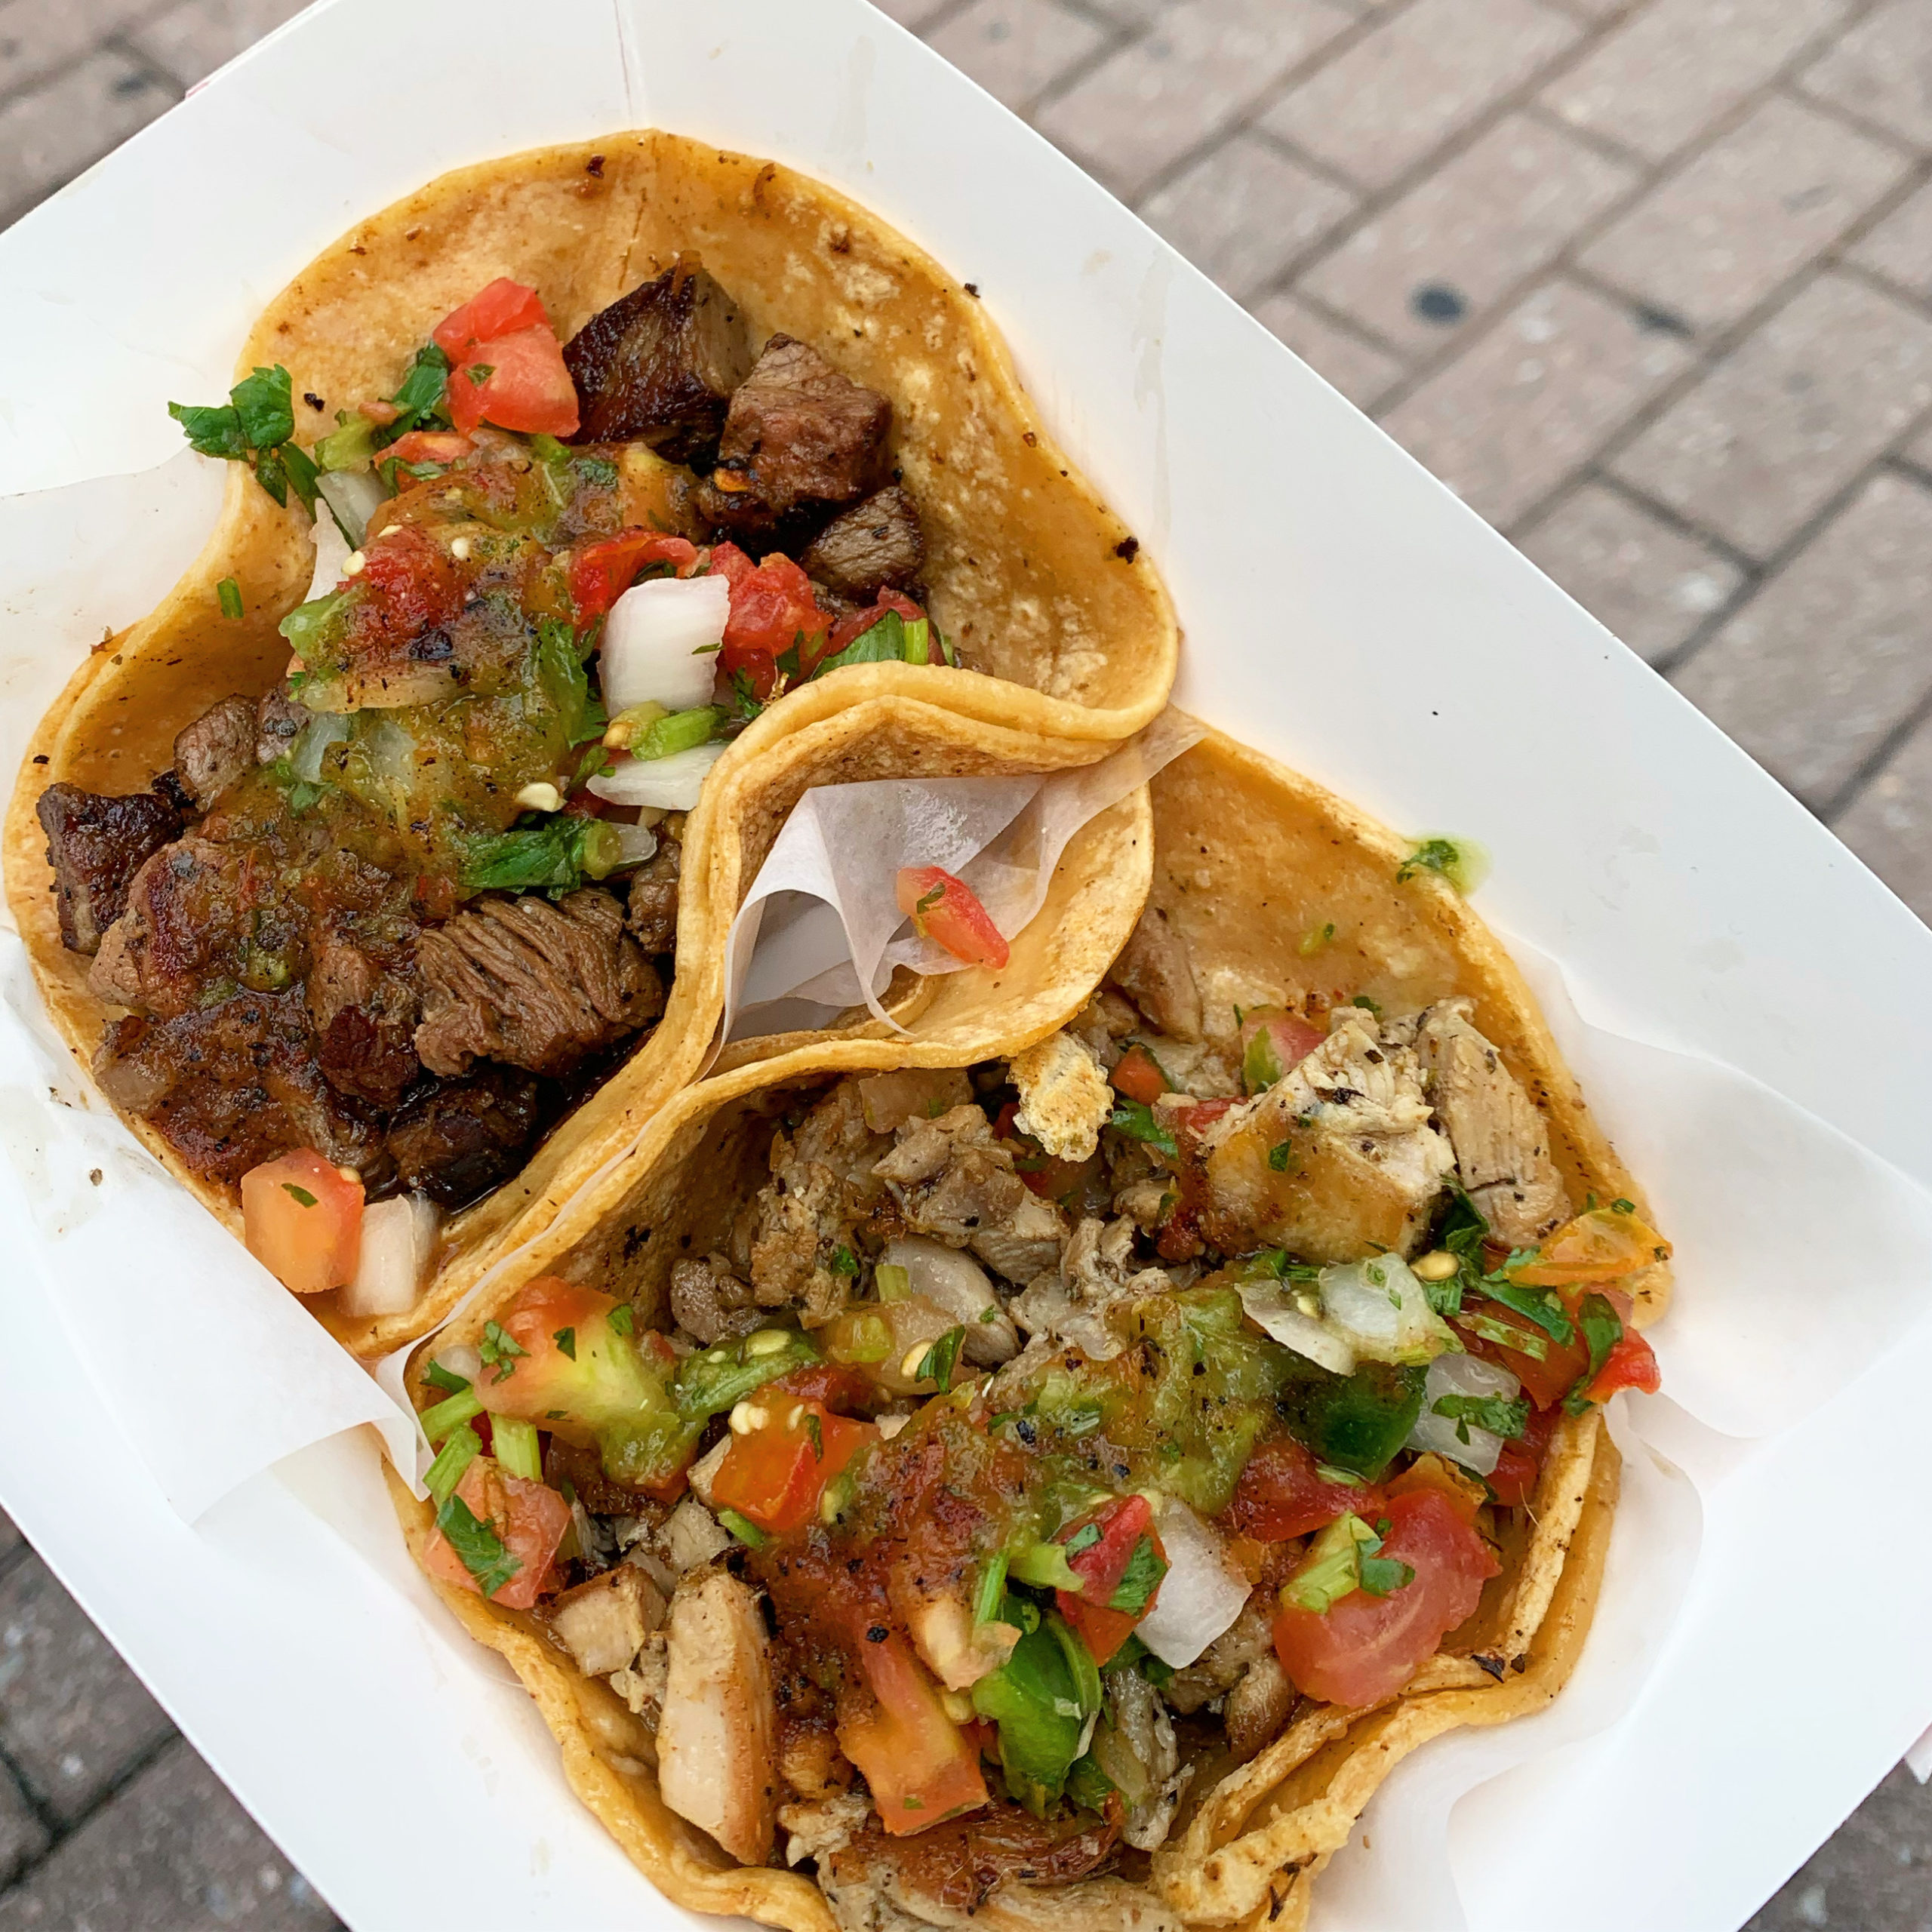 Rent a Mexican Taco food truck for your event catering